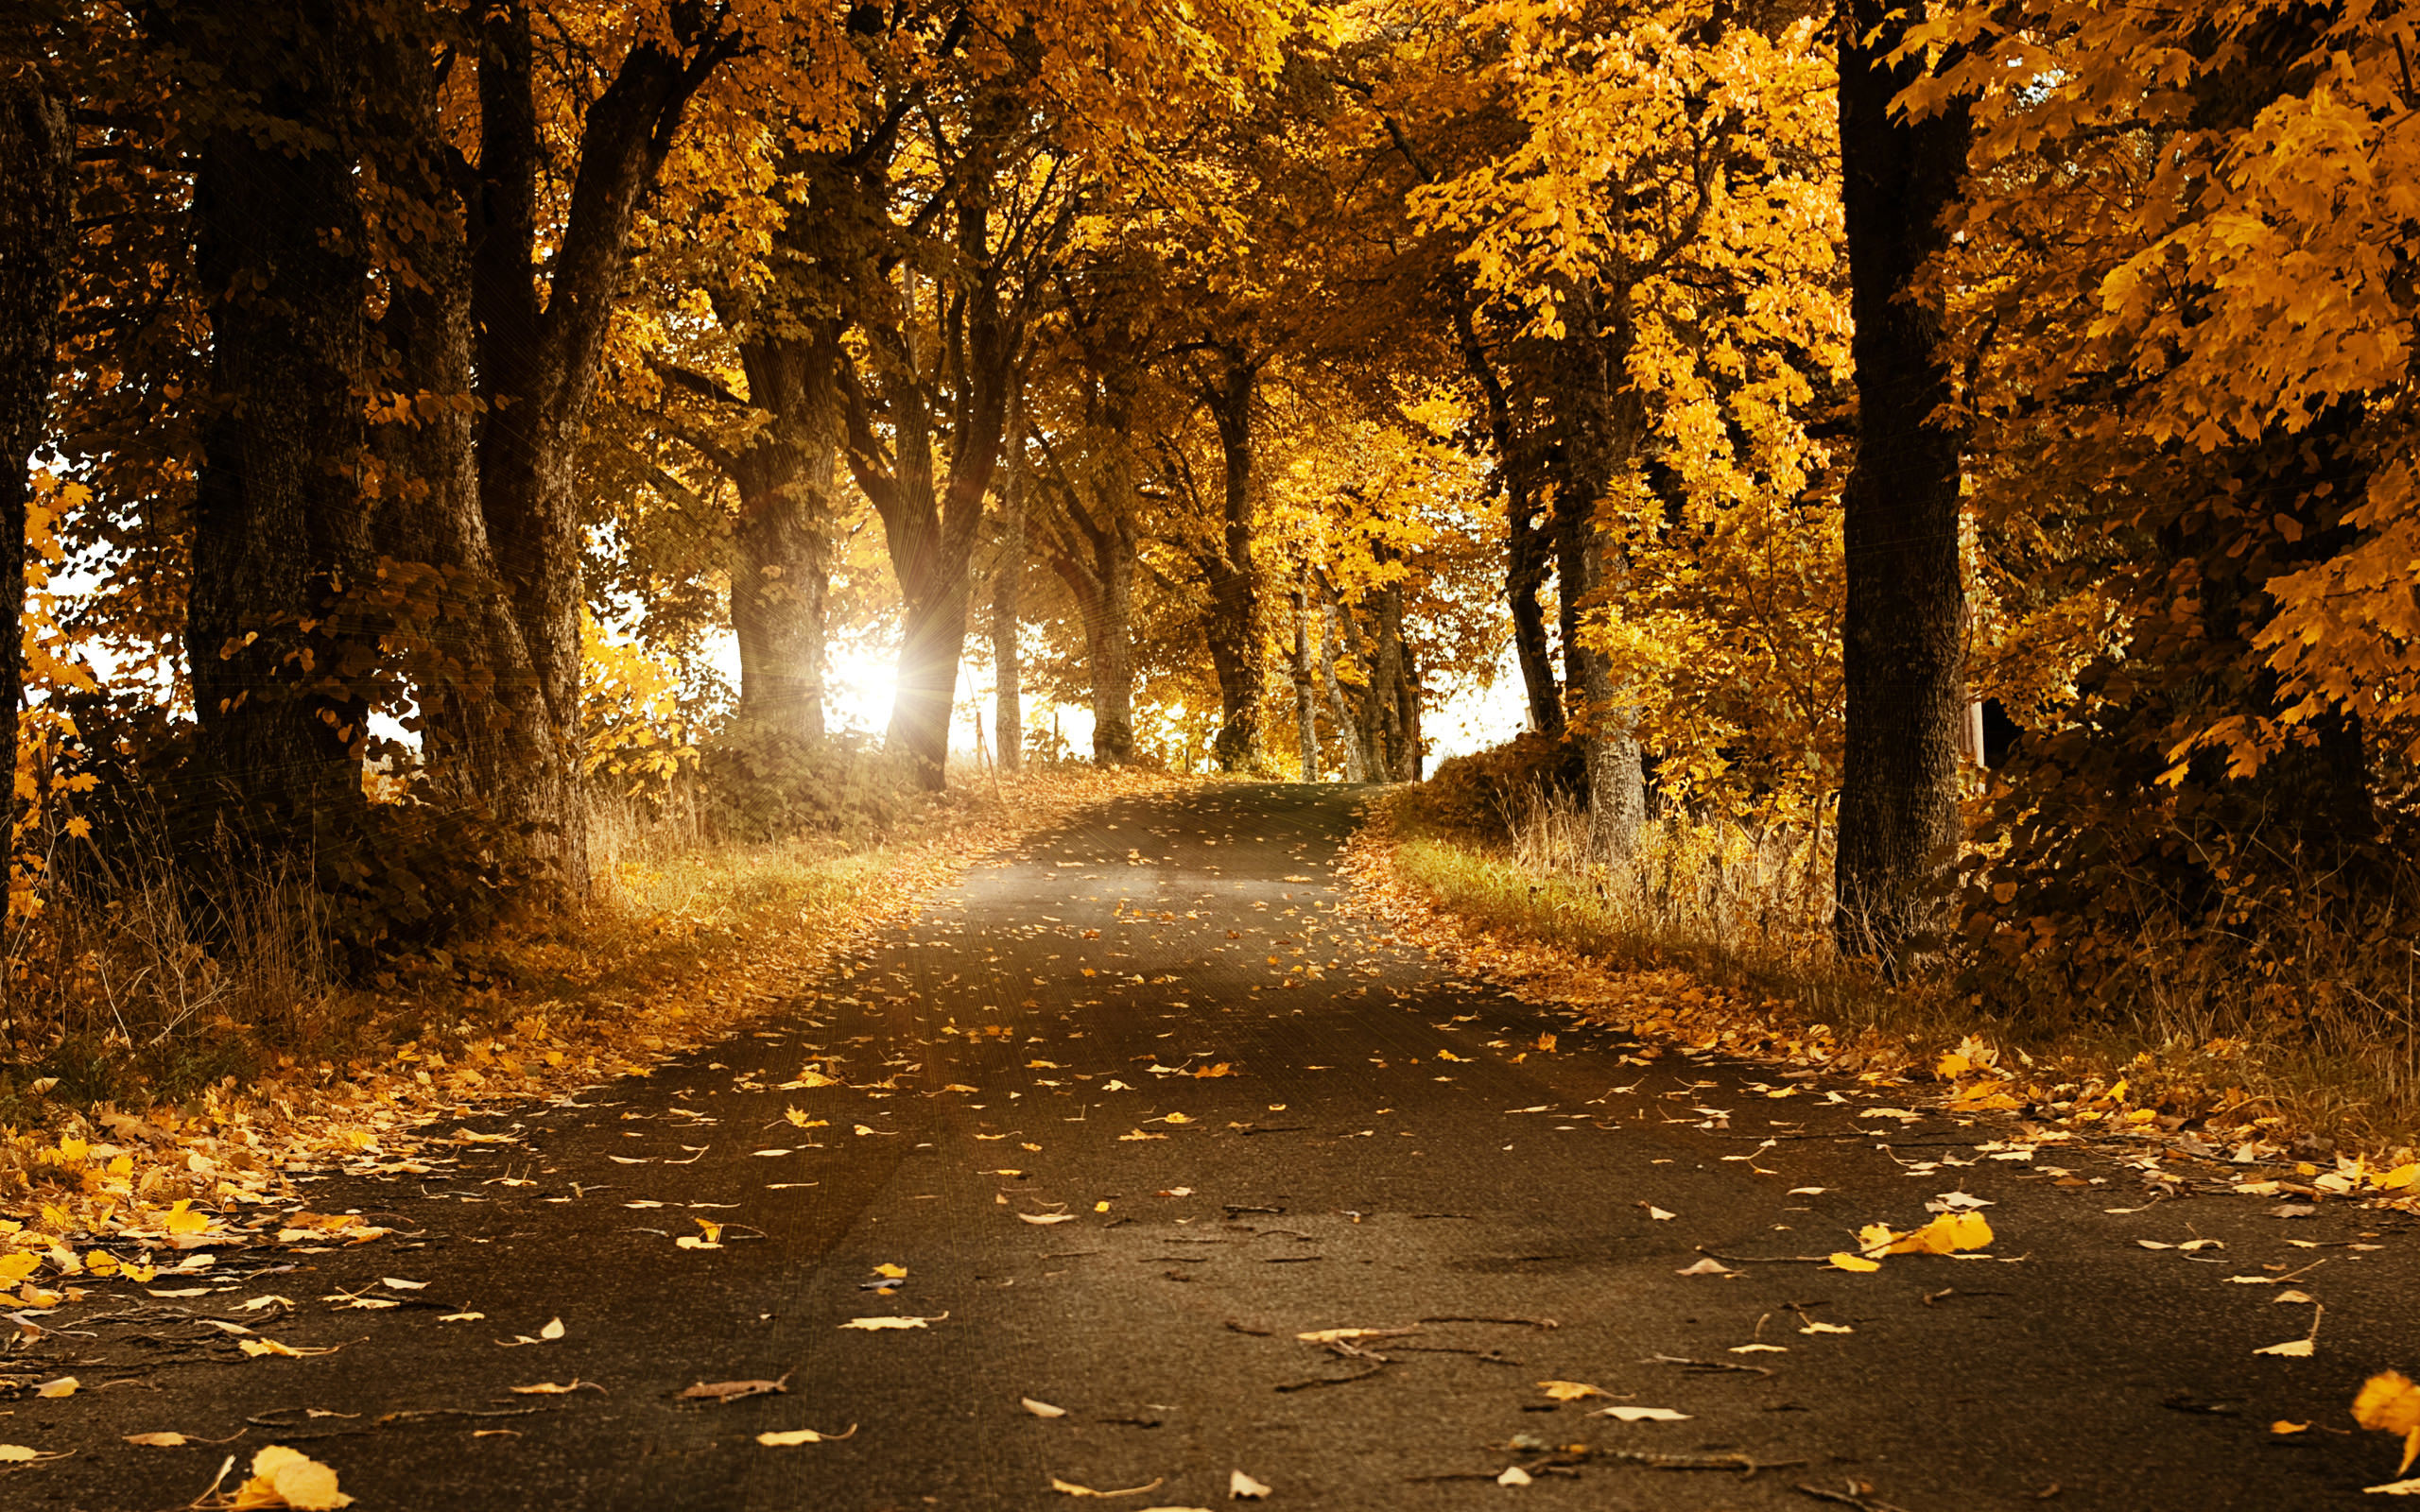 beautiful-autumn-wallpaper-2560x1600-1008098.jpg